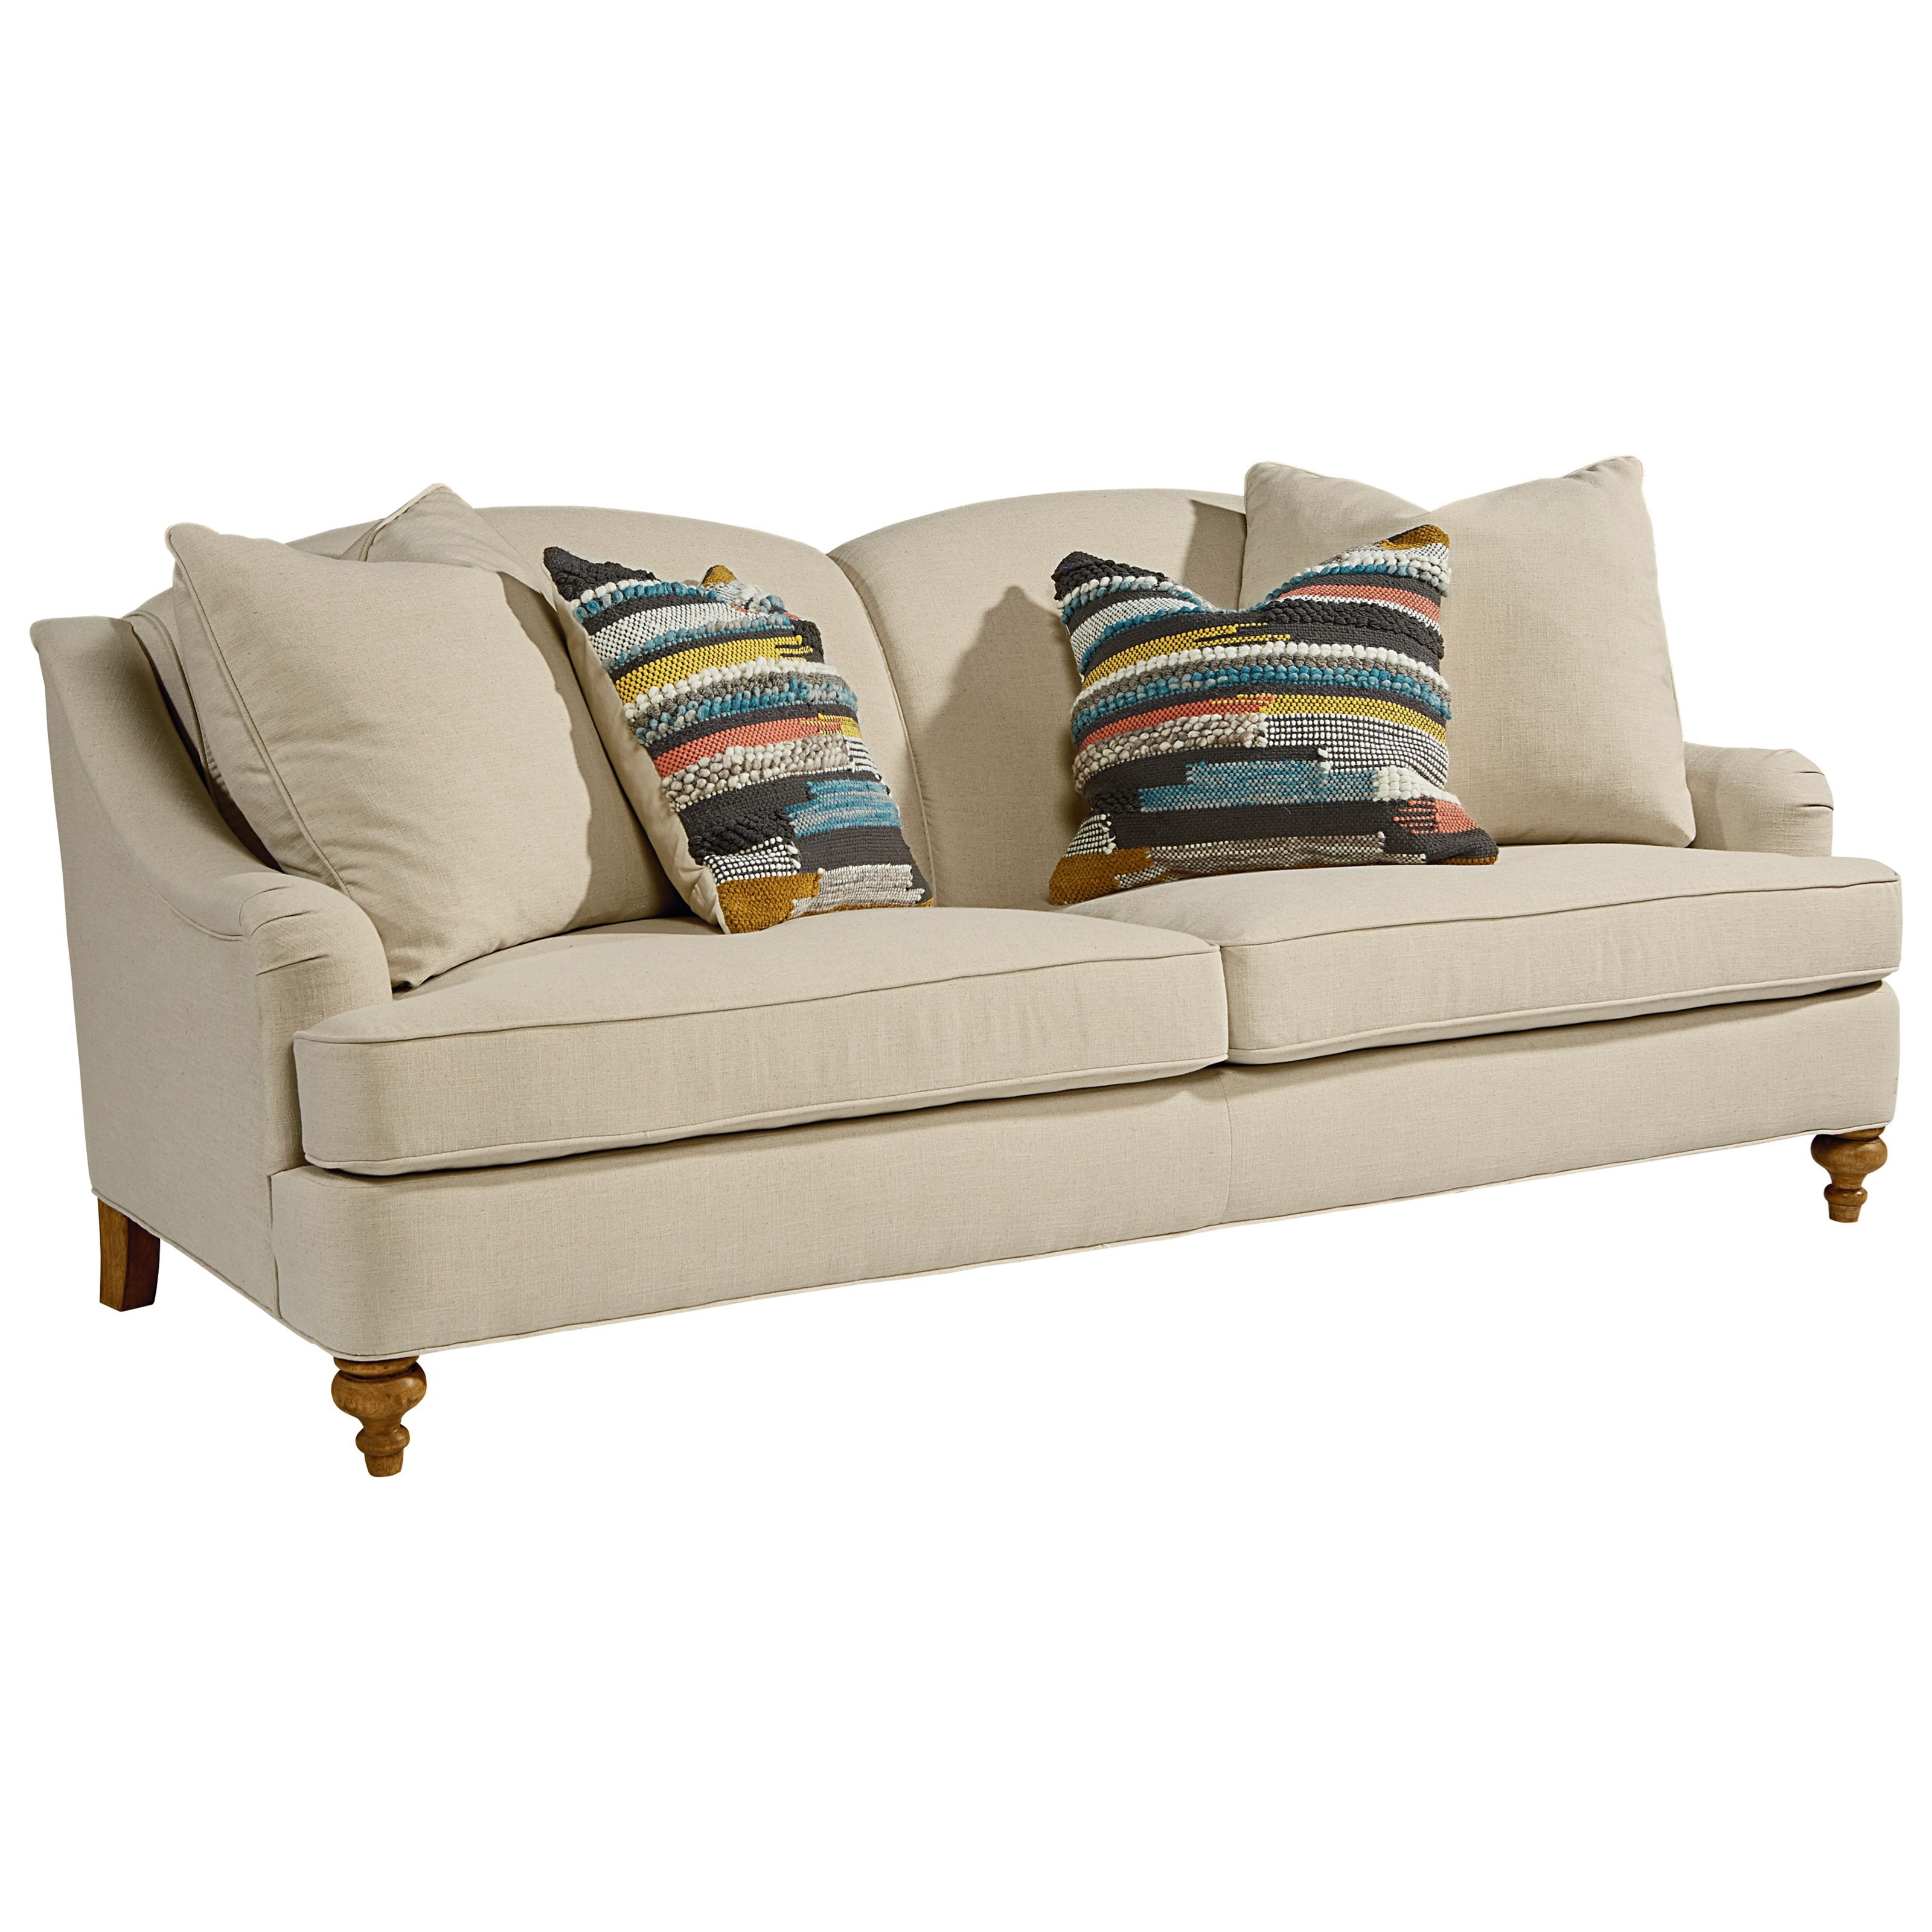 Magnolia Home by Joanna Gaines Adore Sofa - Item Number: 55502301